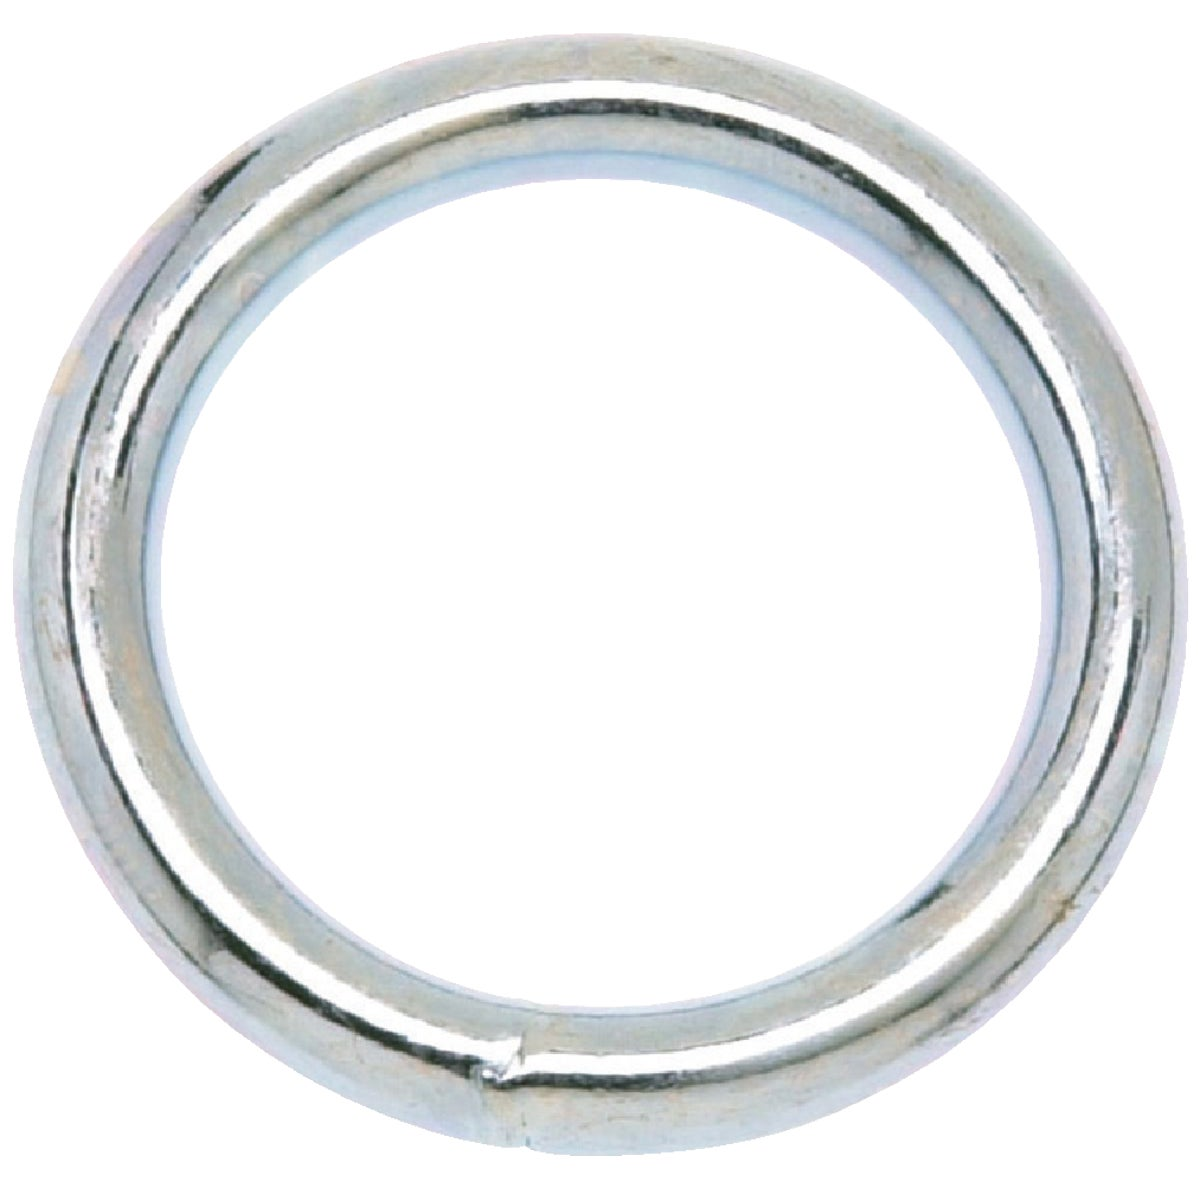 "1"" #7 ROUND RING - T7665012 by Cooper Campbell Apex"